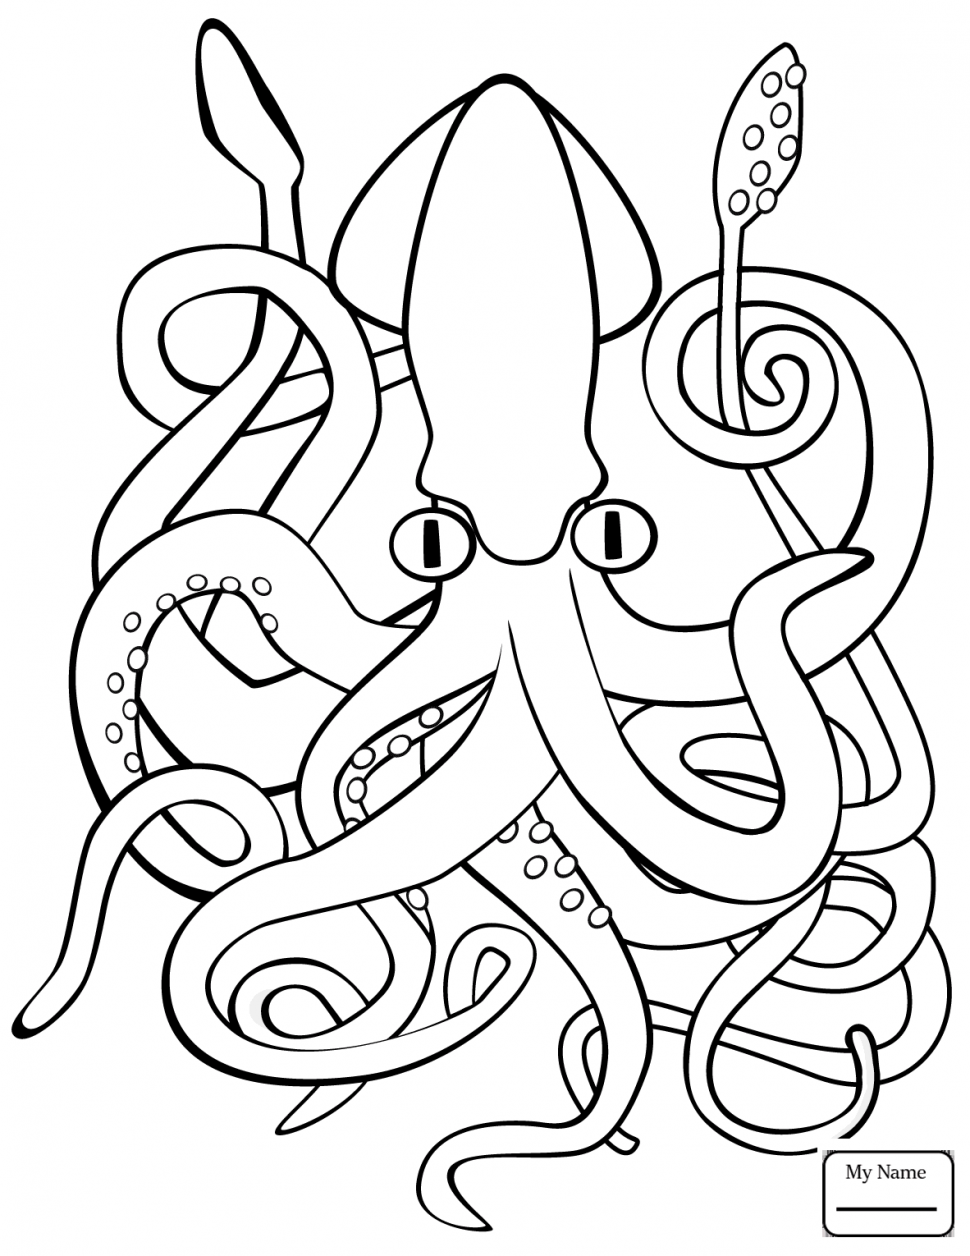 Octopus Drawing For Kids